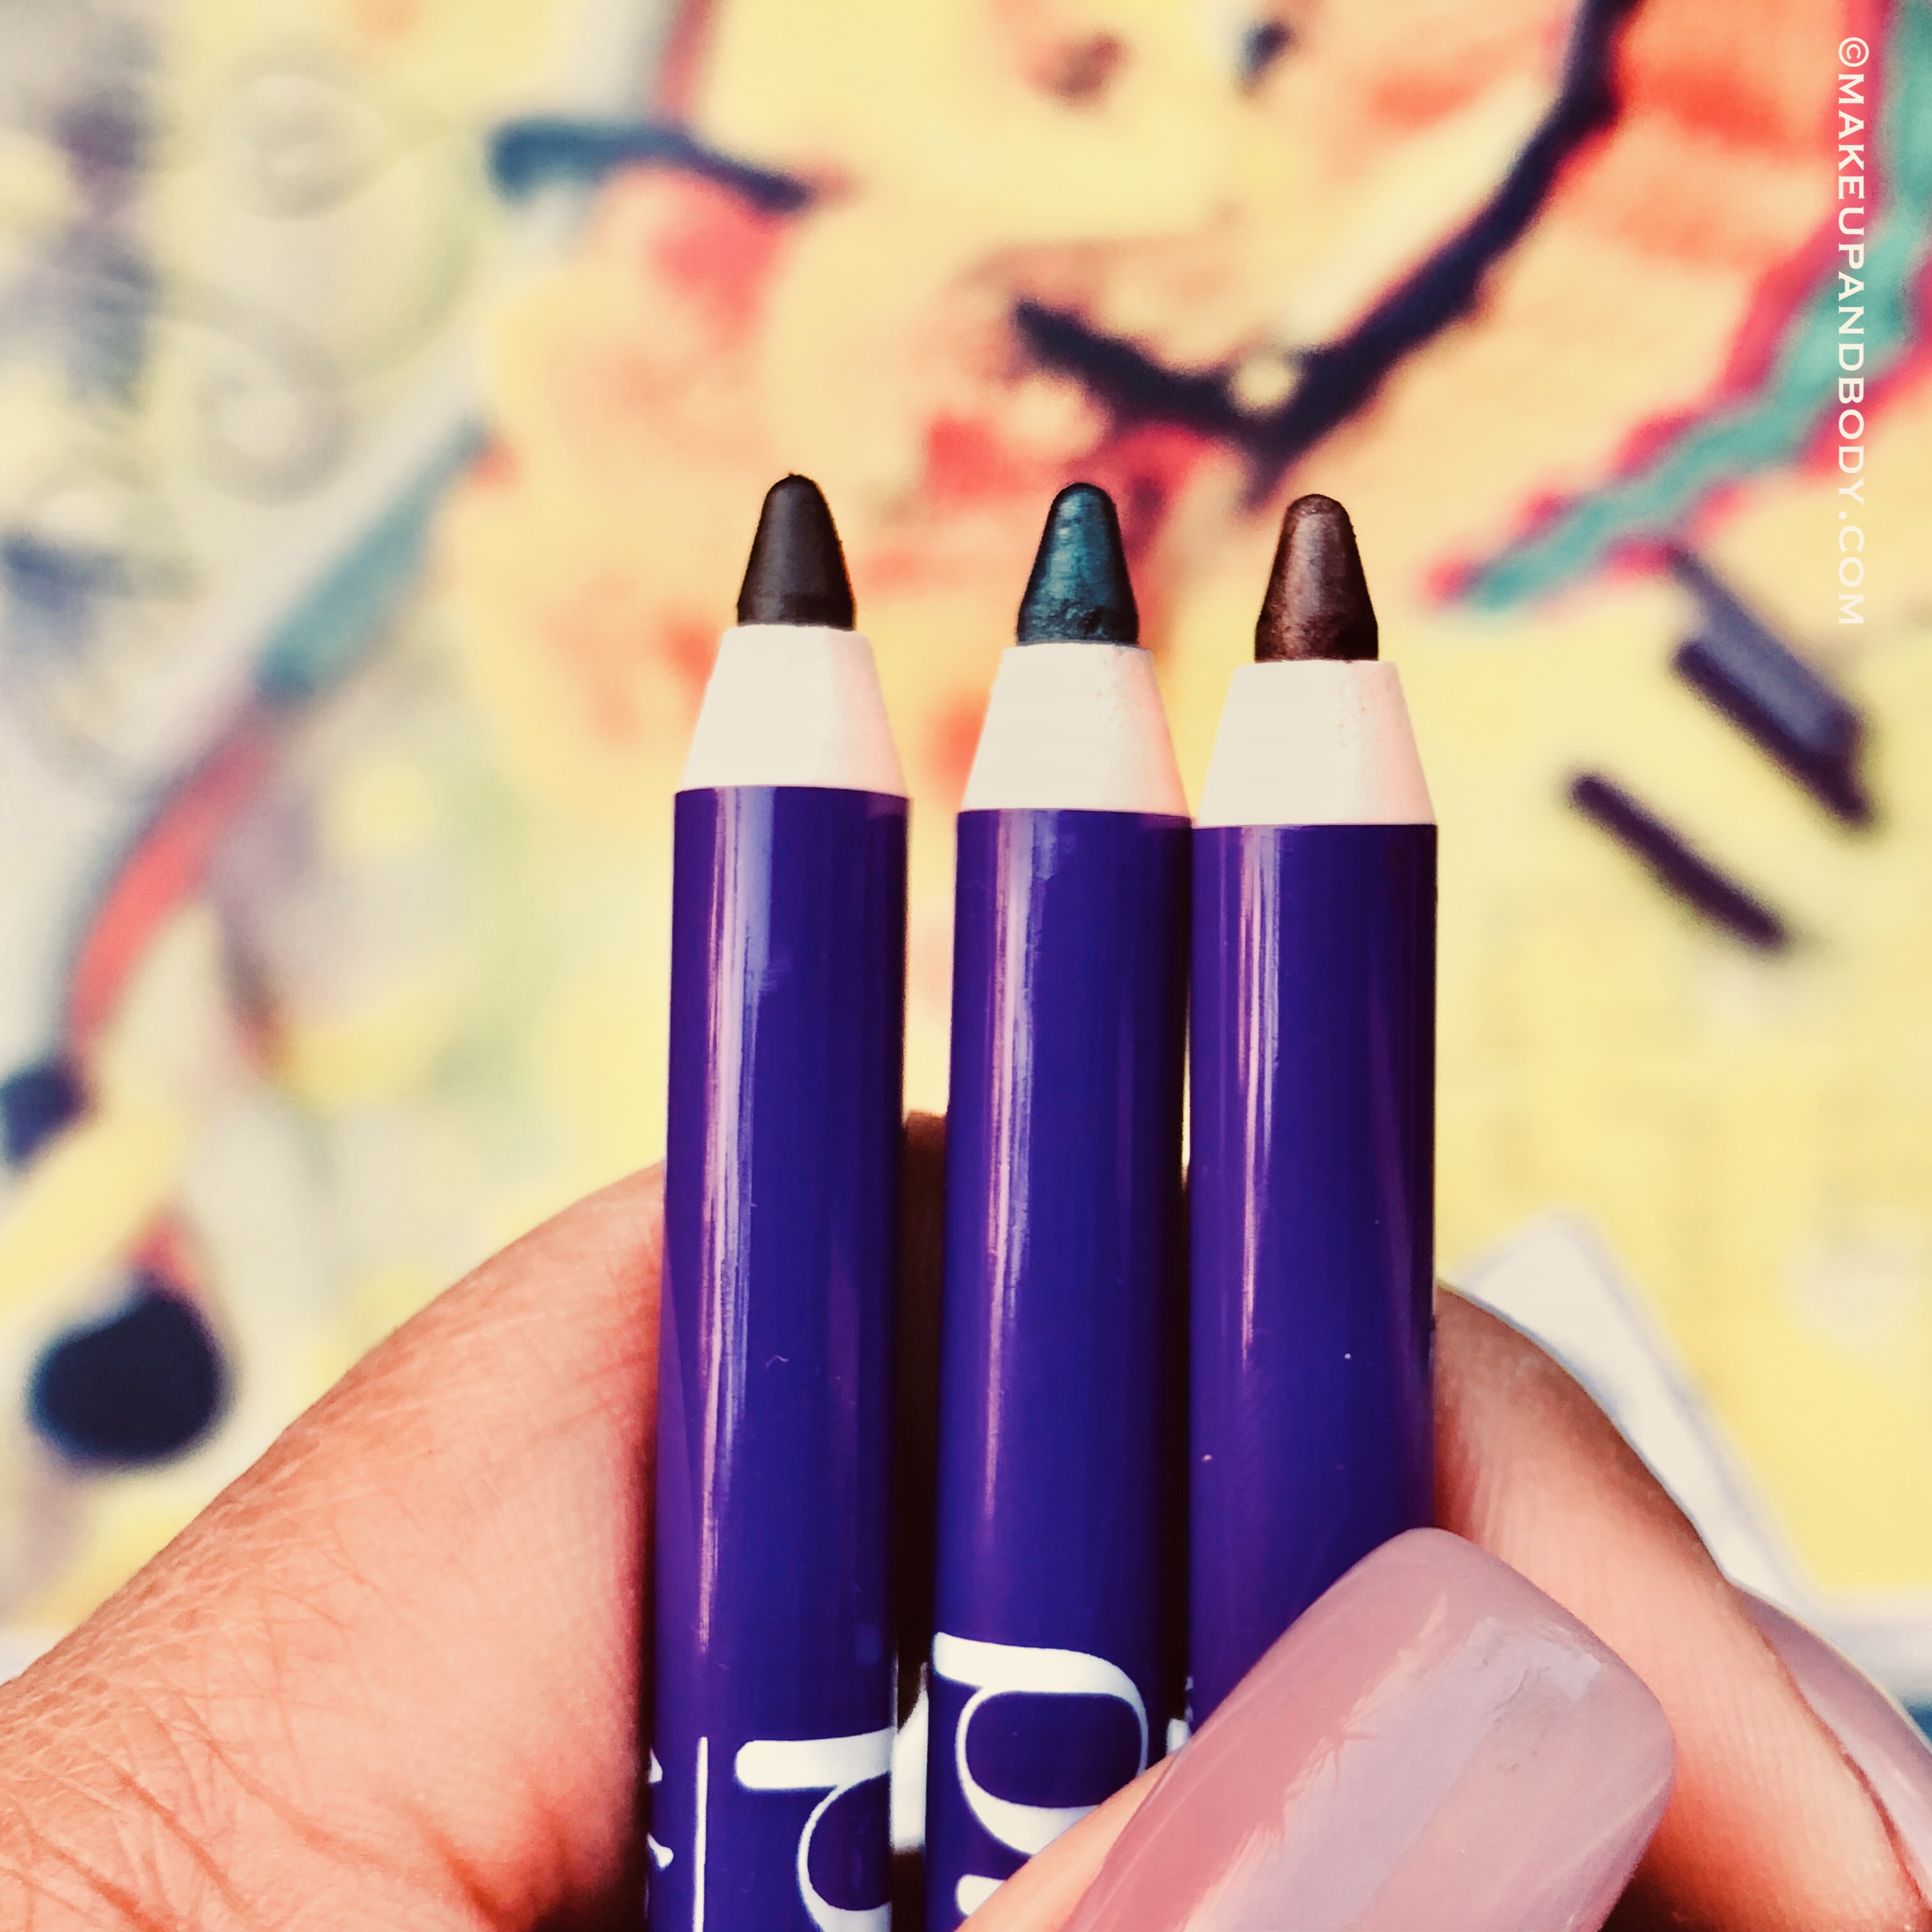 Plum NaturStudio All-Day-Wear Kohl Kajal- Uptown Brown & Gemstone Green-Review and Swatches